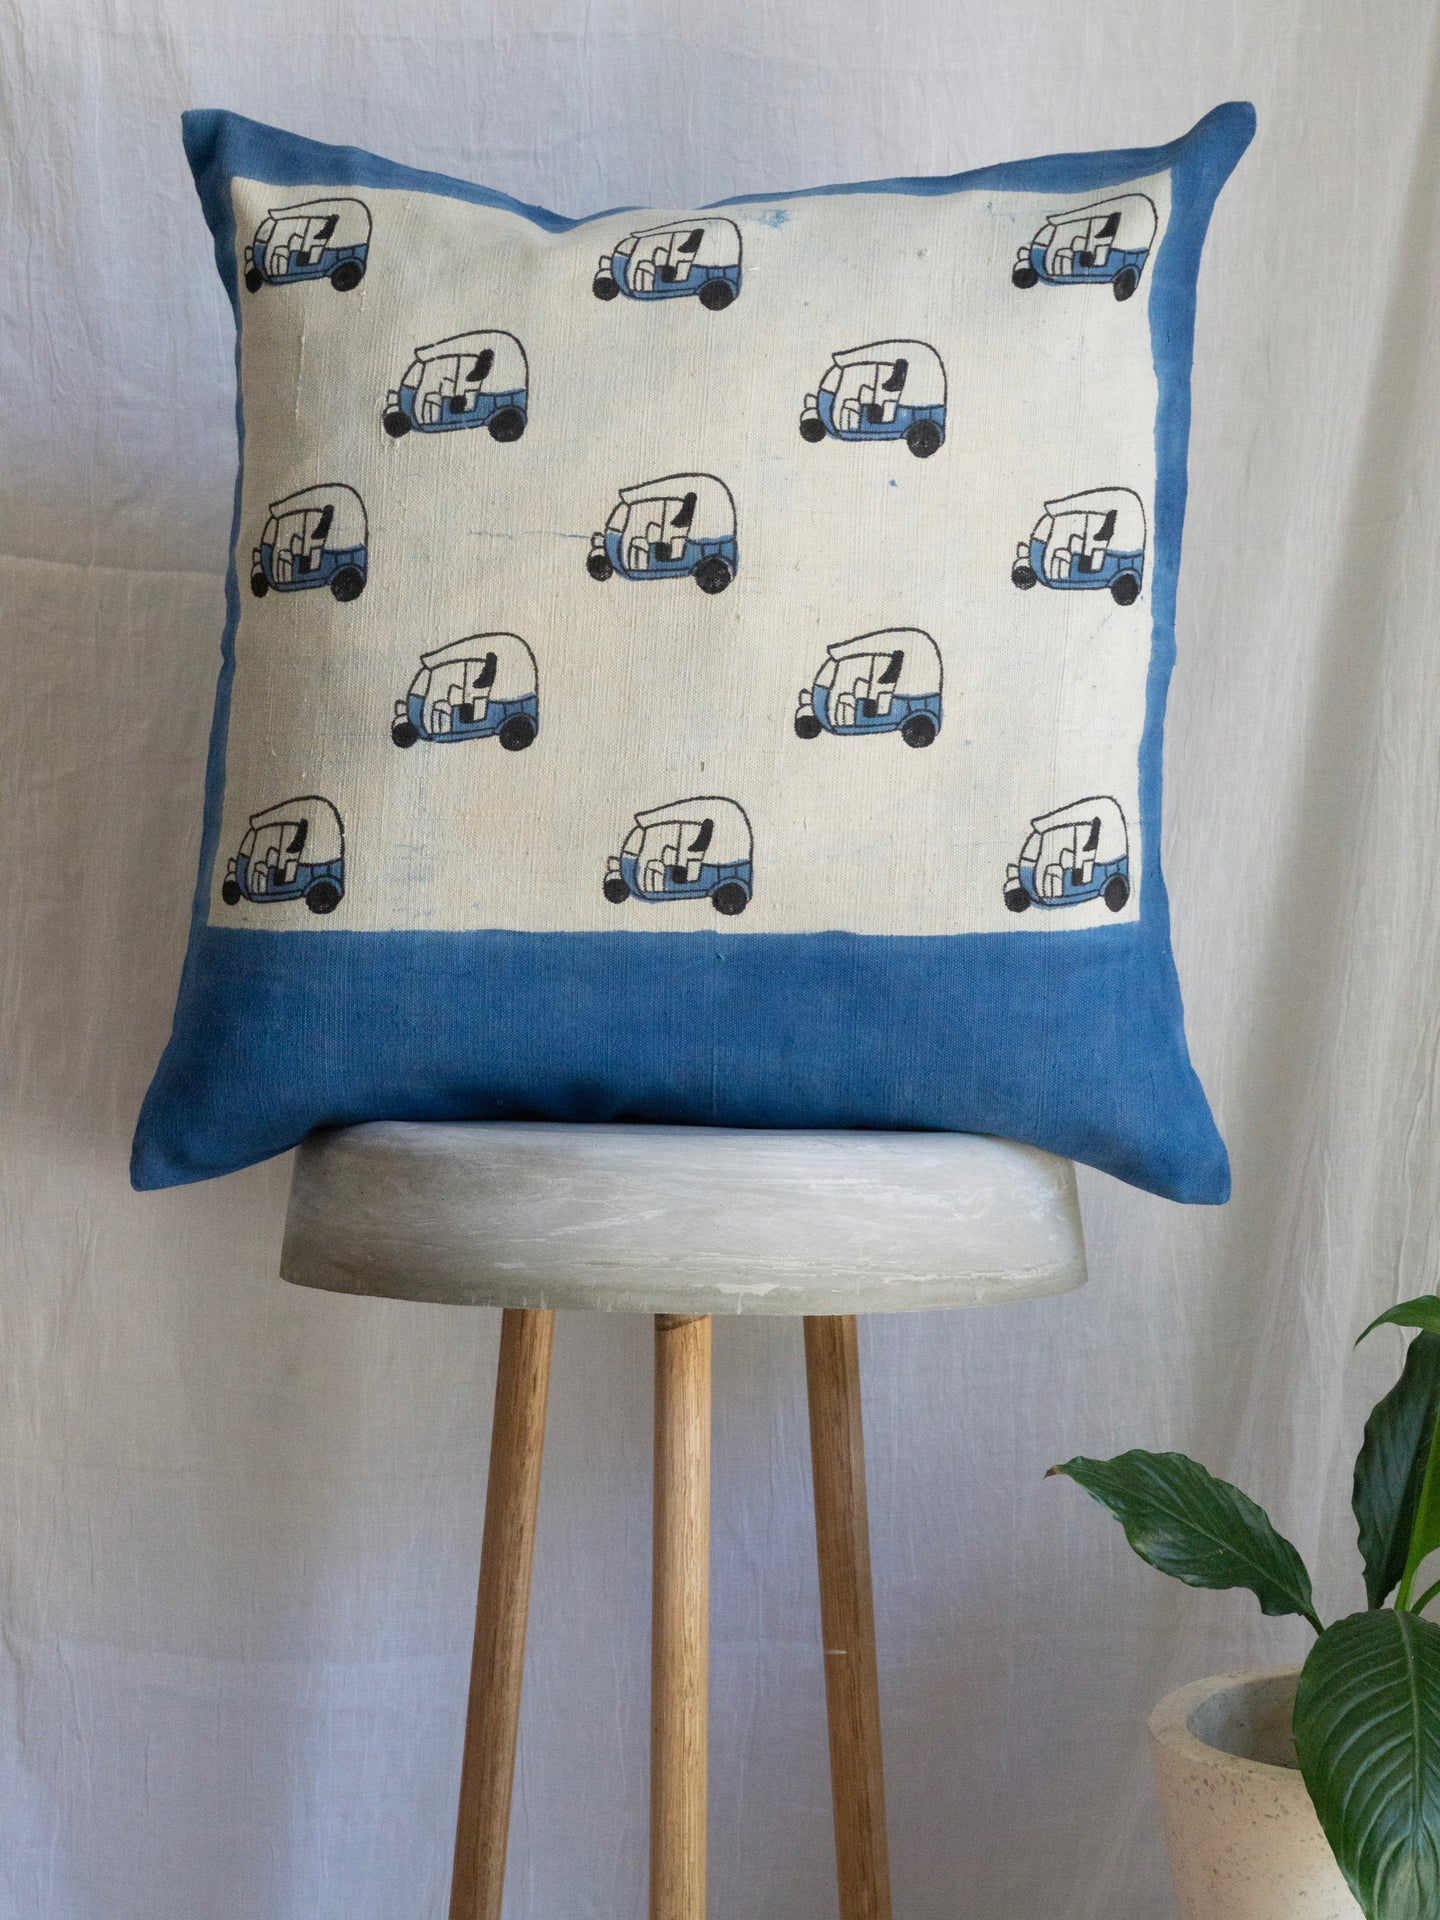 Linen Cushion Cover With Tuk-Tuk